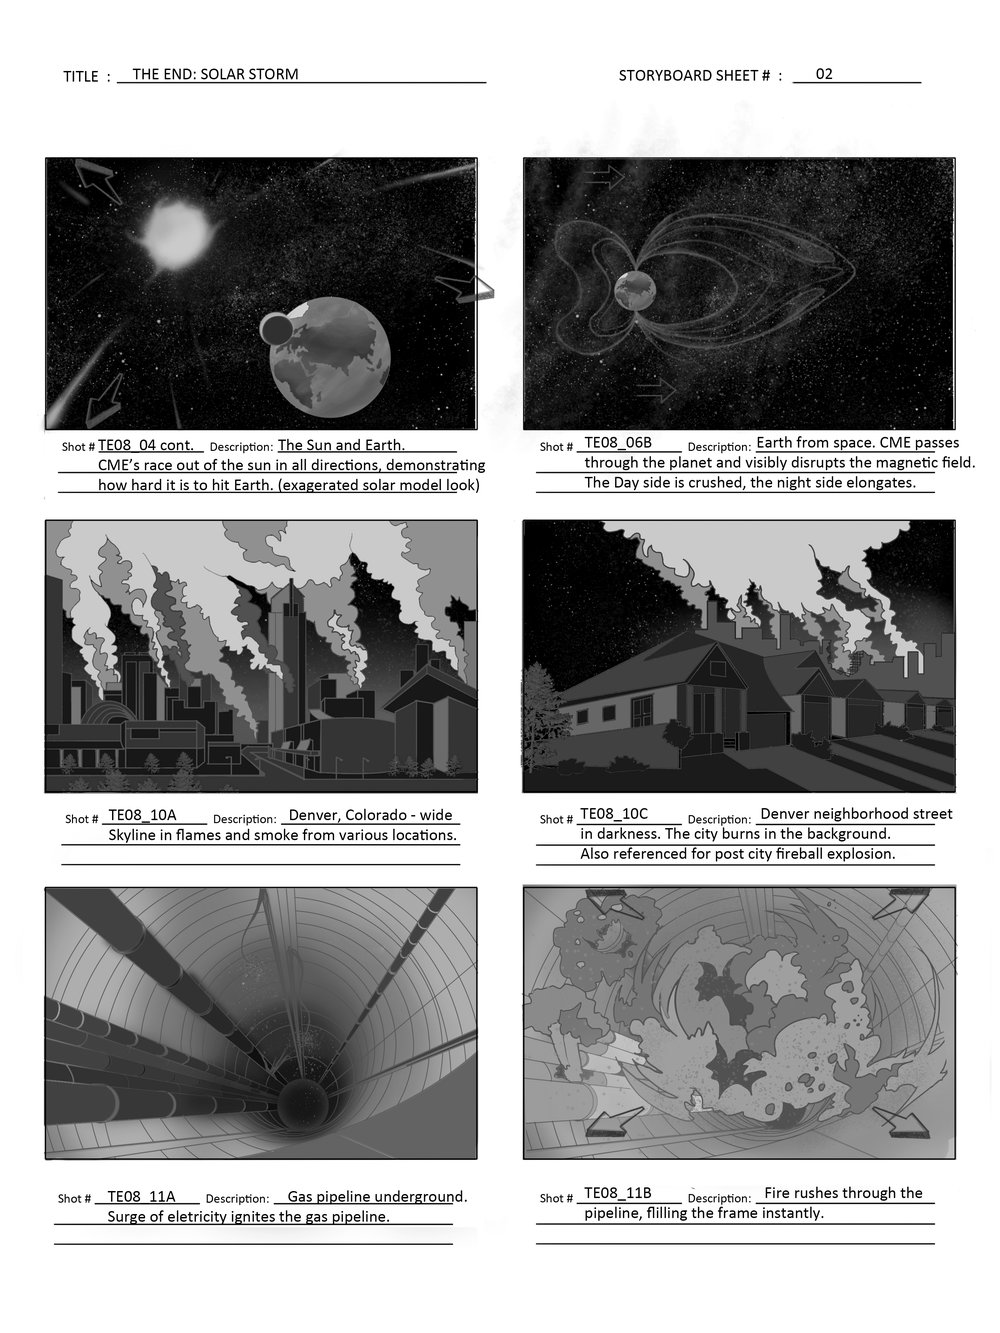 TE08_Solar Storm Storyboard_Digital Revision_Page 02.jpg